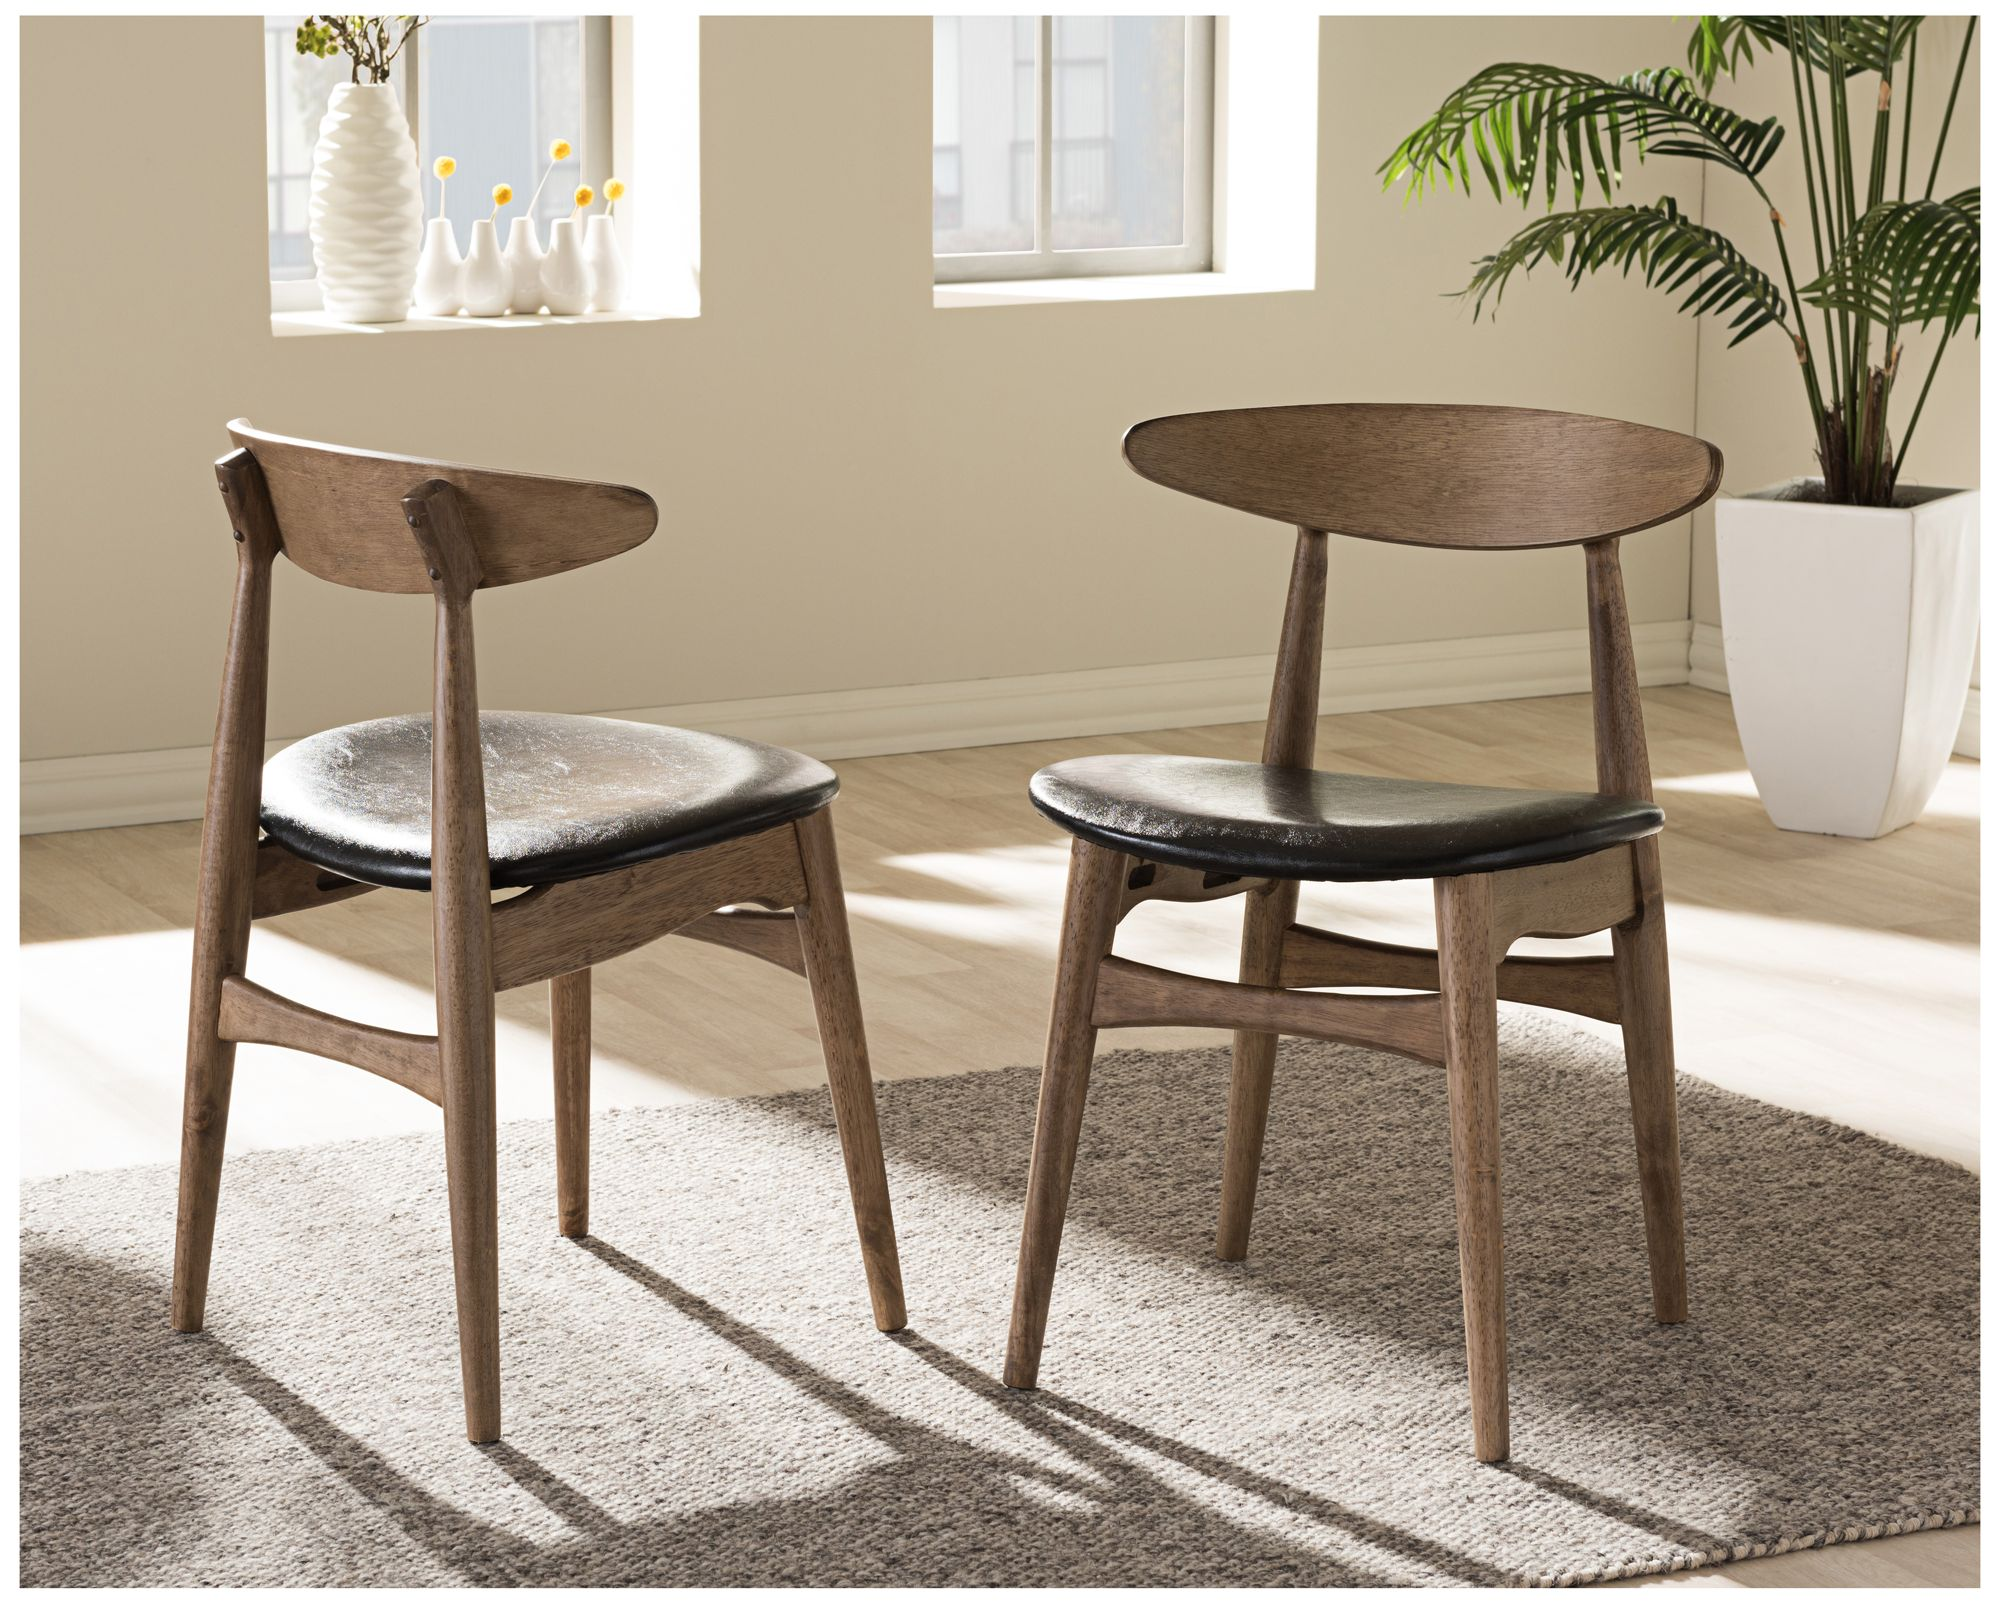 Baxton Studio Edna Black And Oak Wood Dining Chair Set Of 2